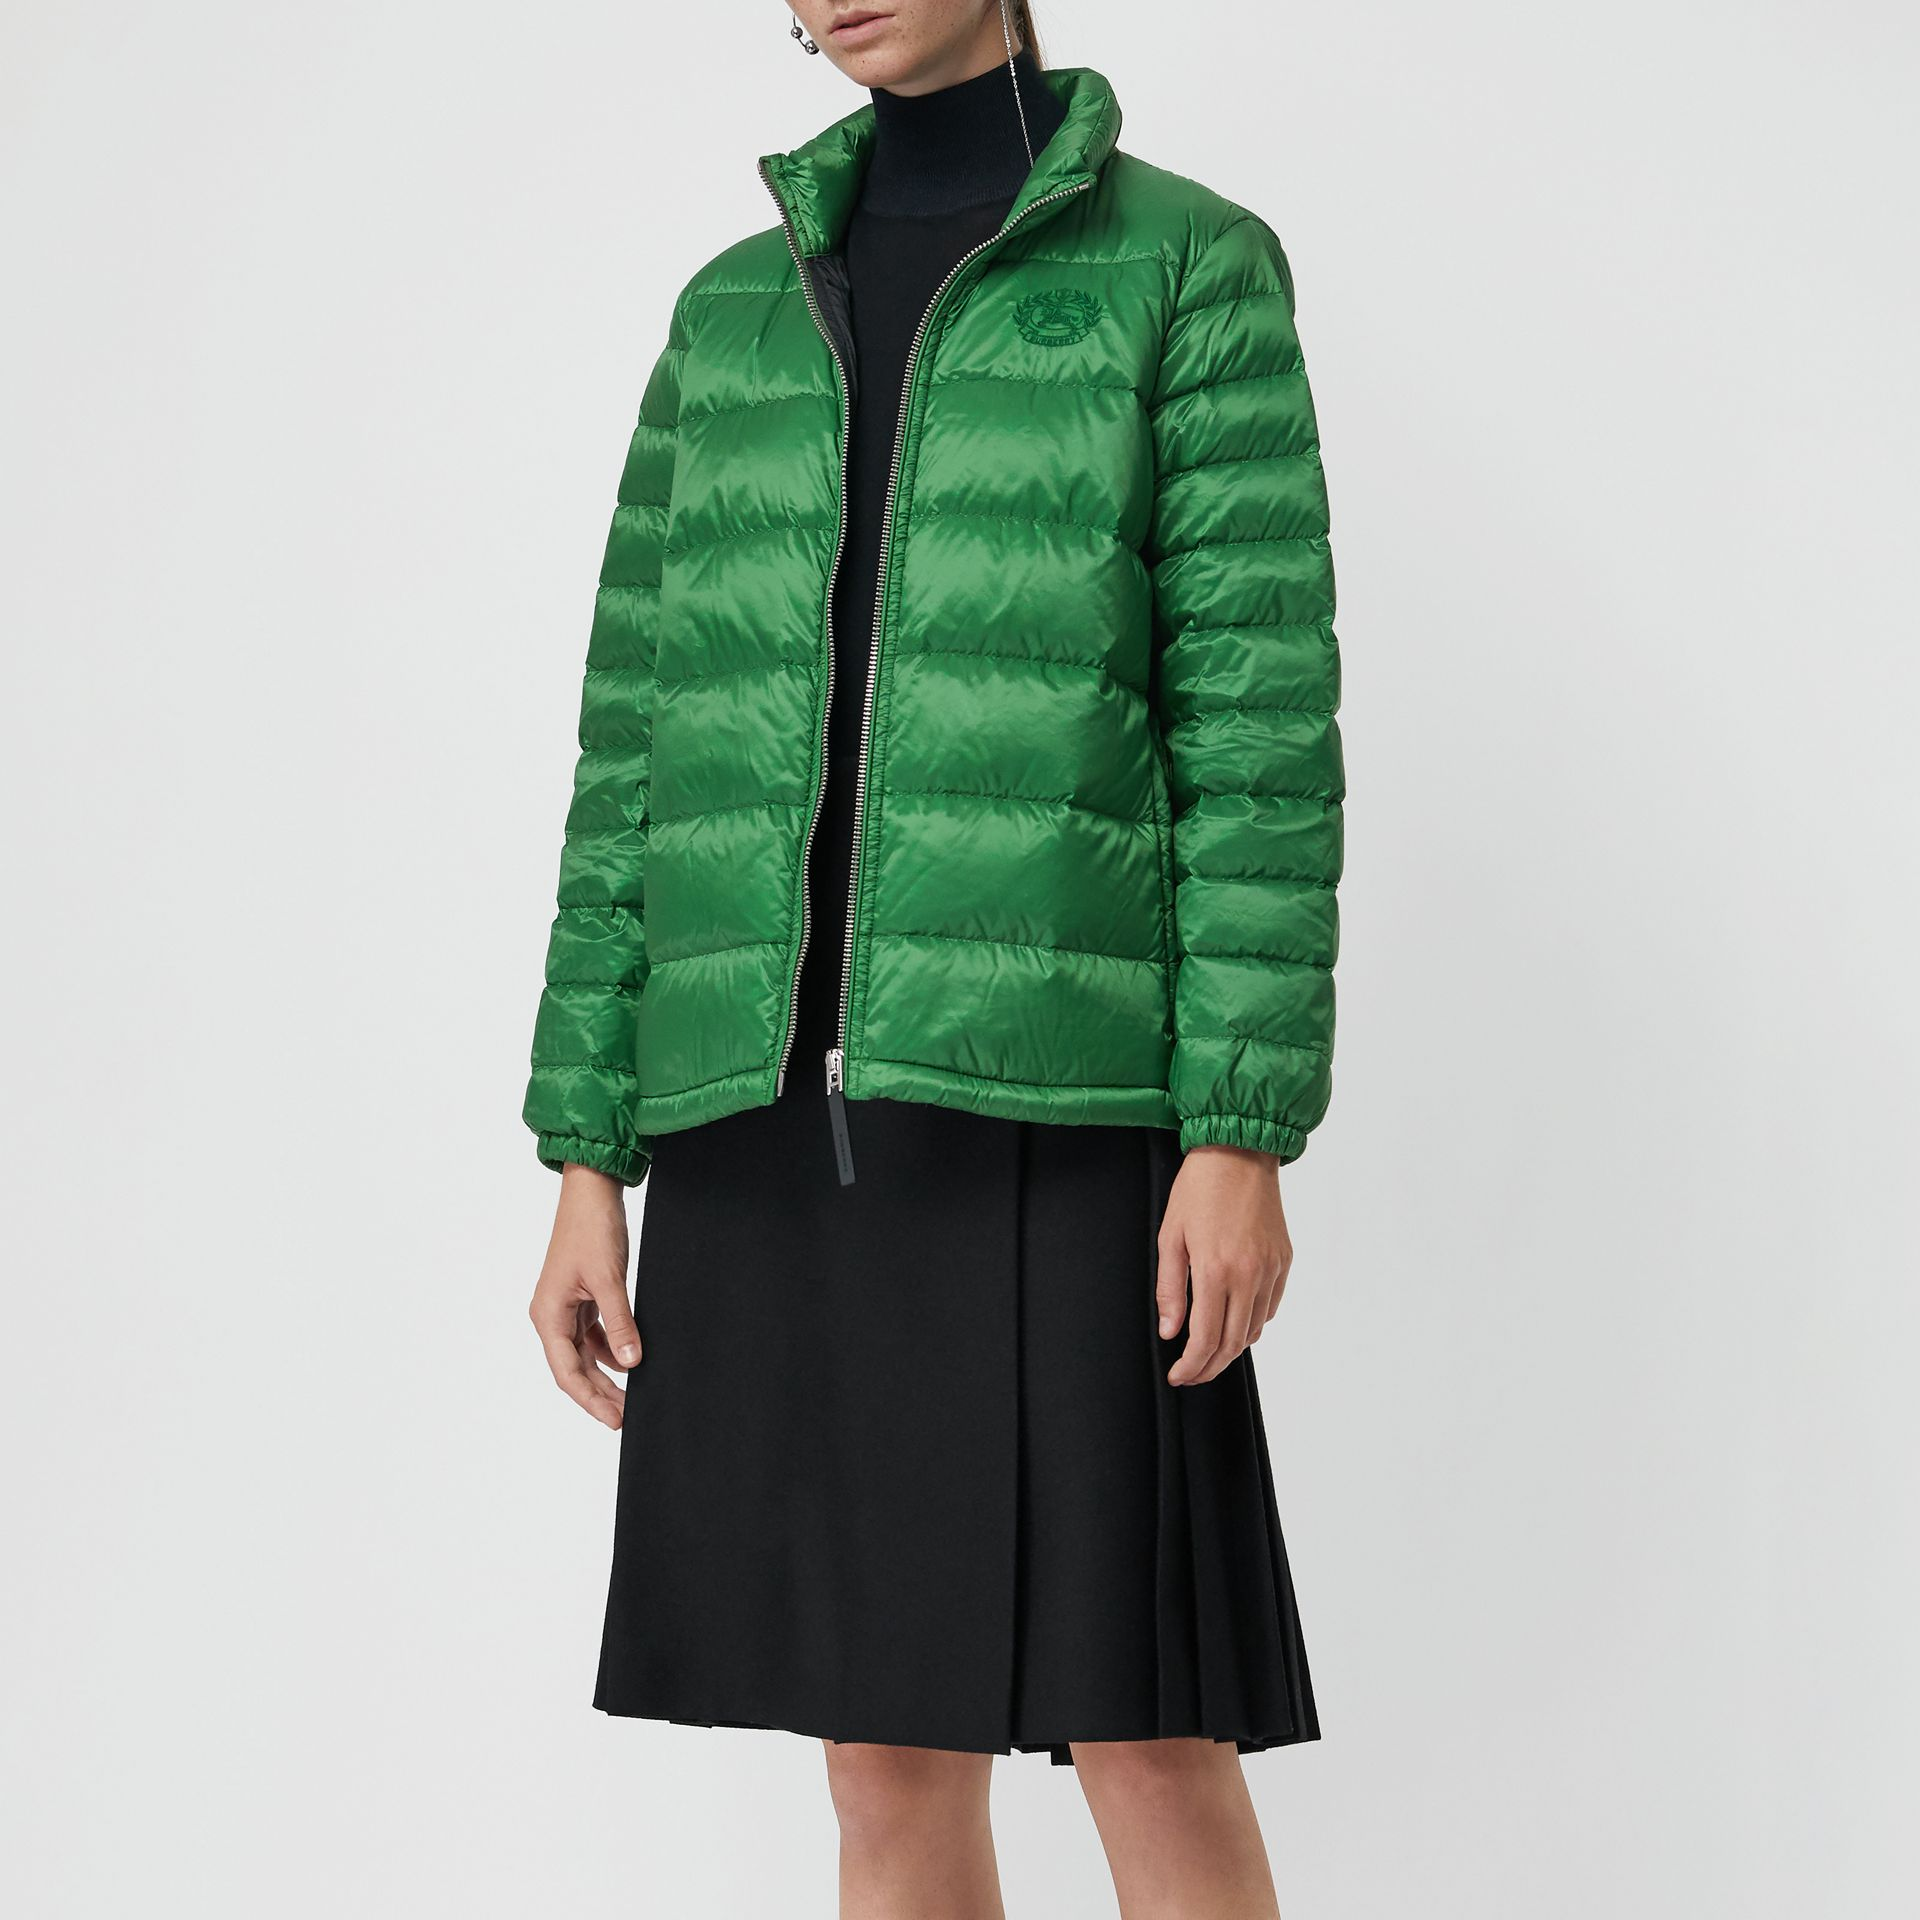 Down-filled Puffer Jacket in Emerald Green - Women | Burberry - gallery image 4